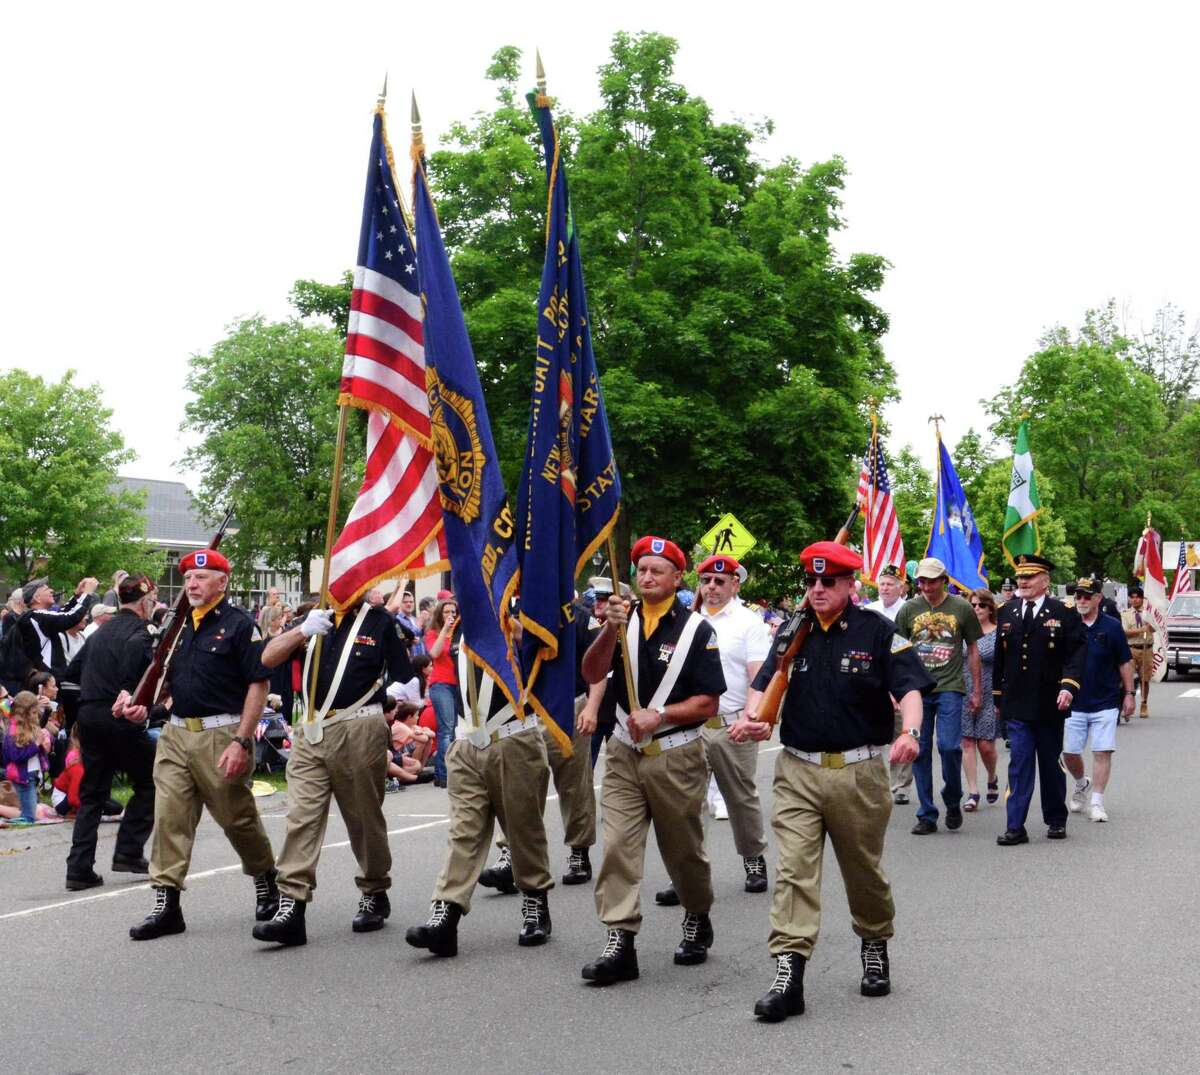 New Milford held its annual Memorial Day parade on May 28, 2018.